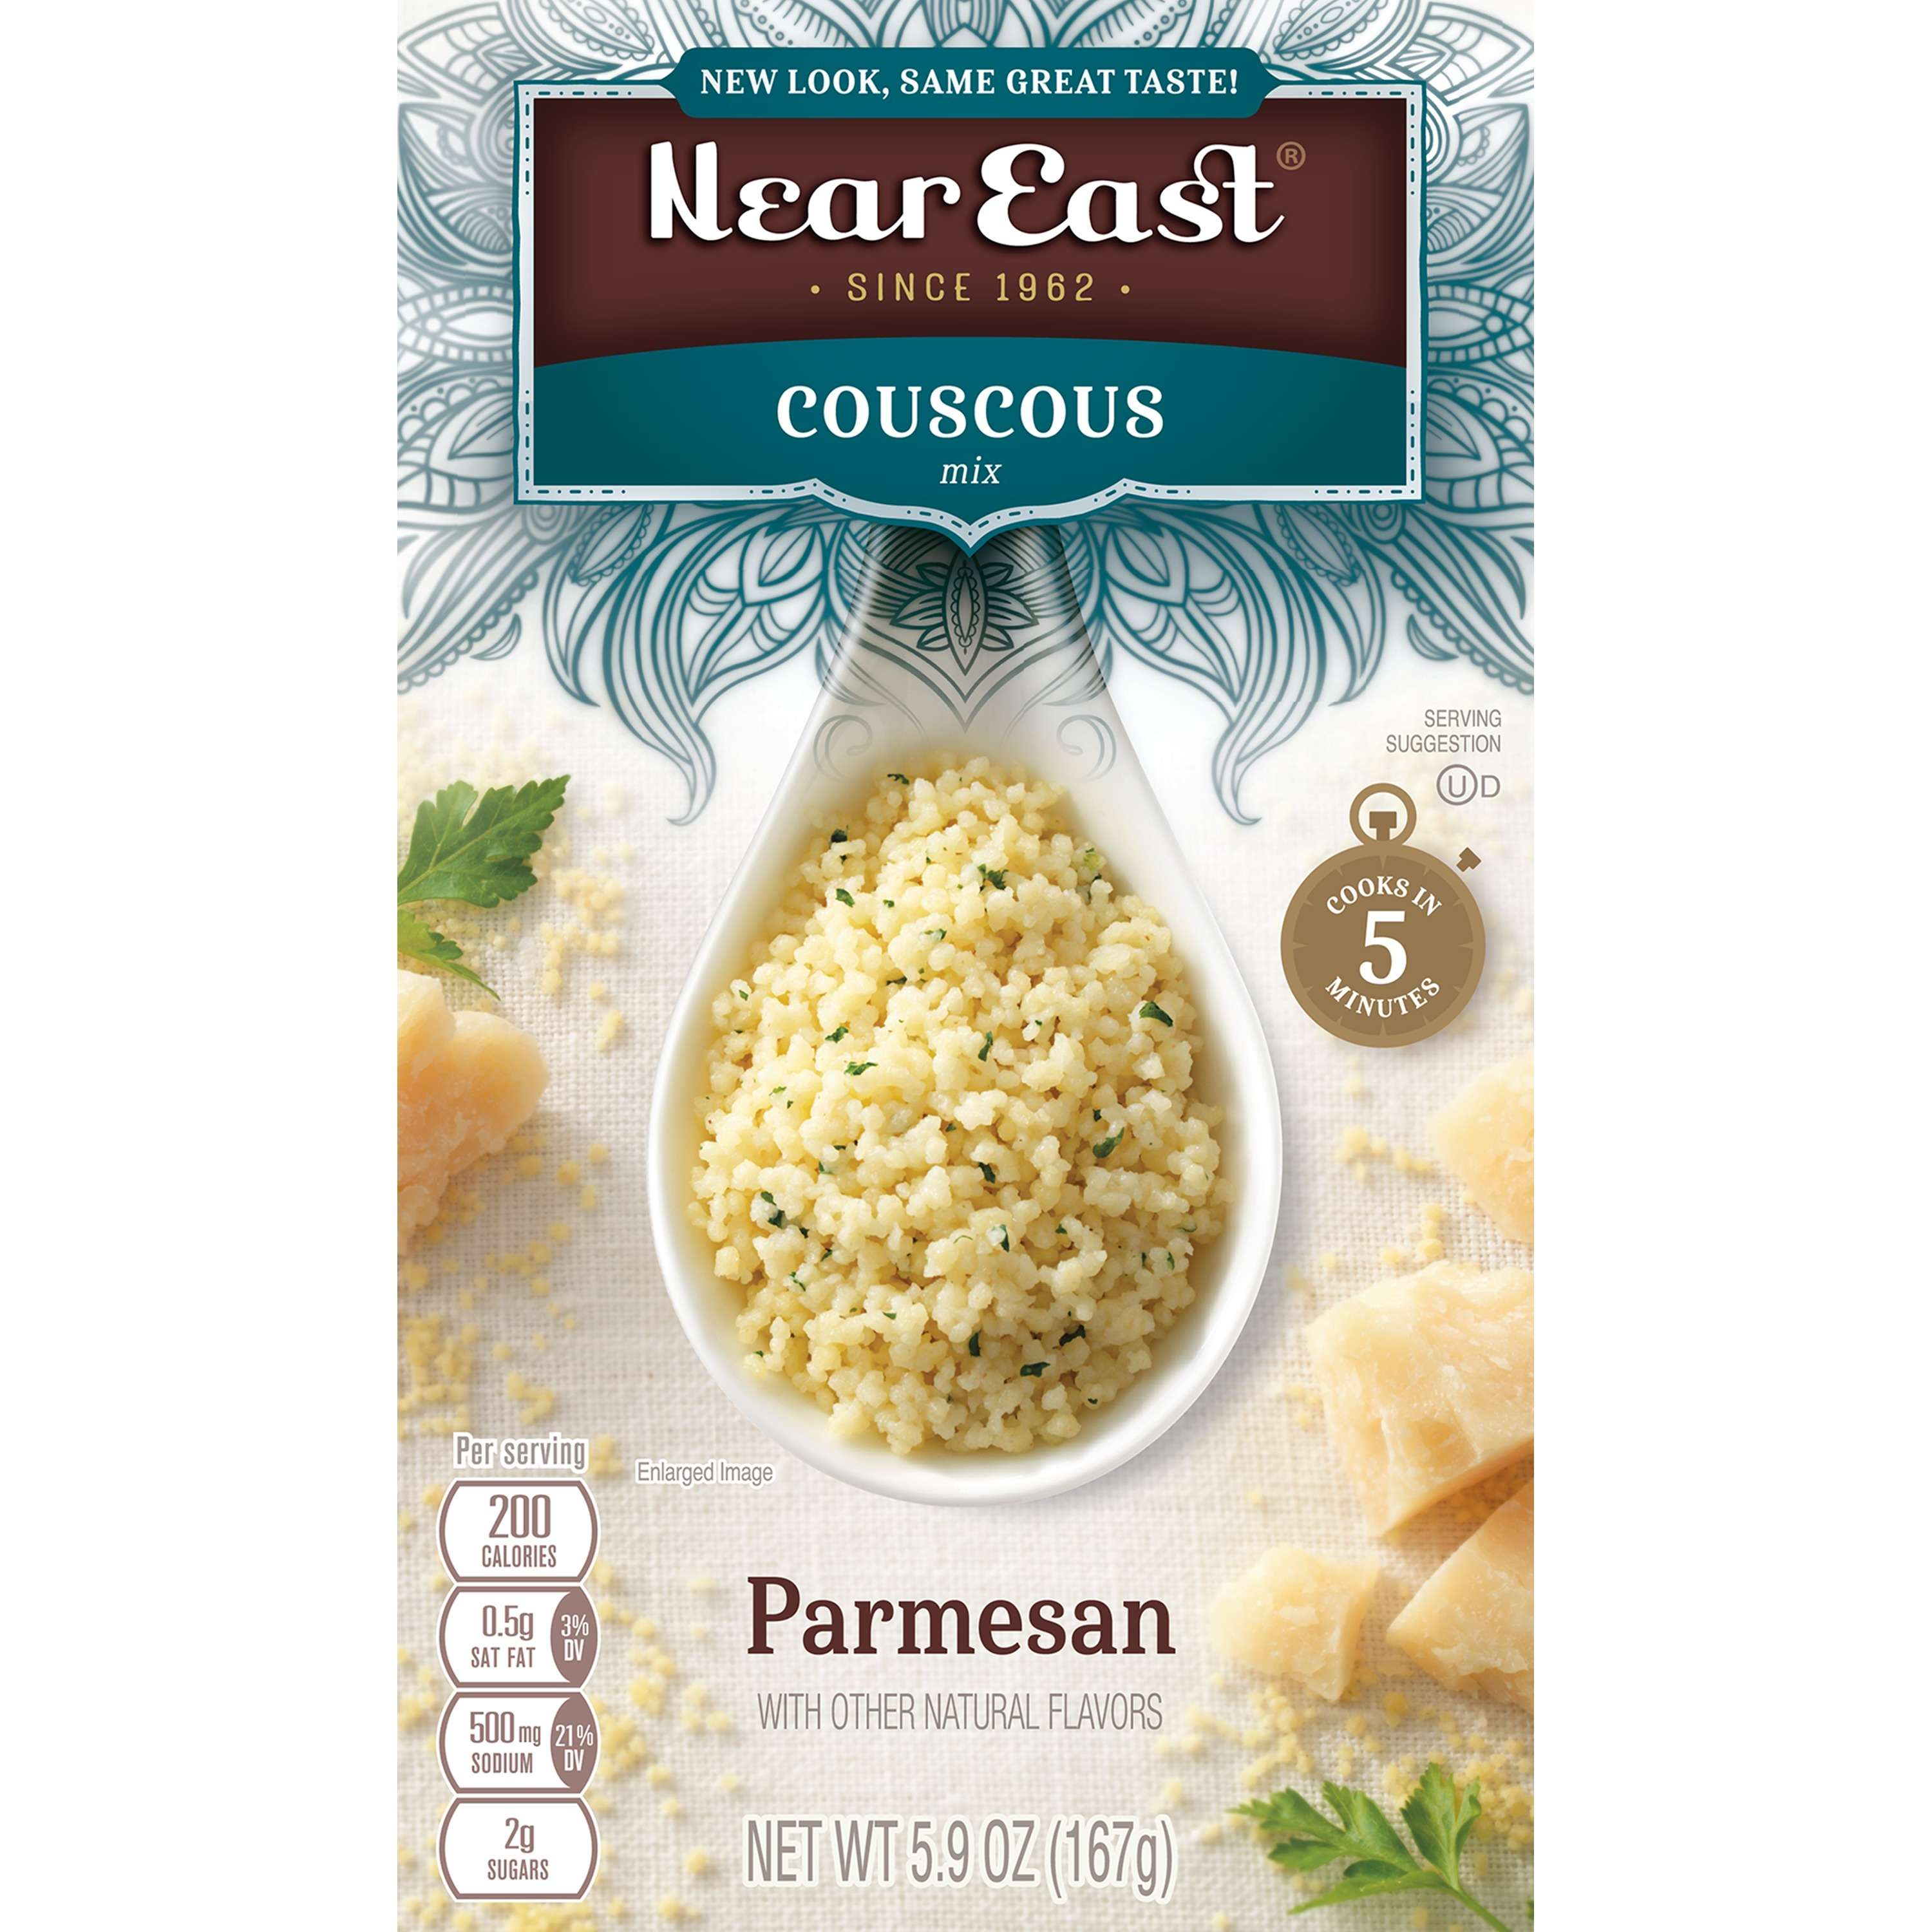 Near East Couscous Mix, Parmesan, 5.9 oz Box